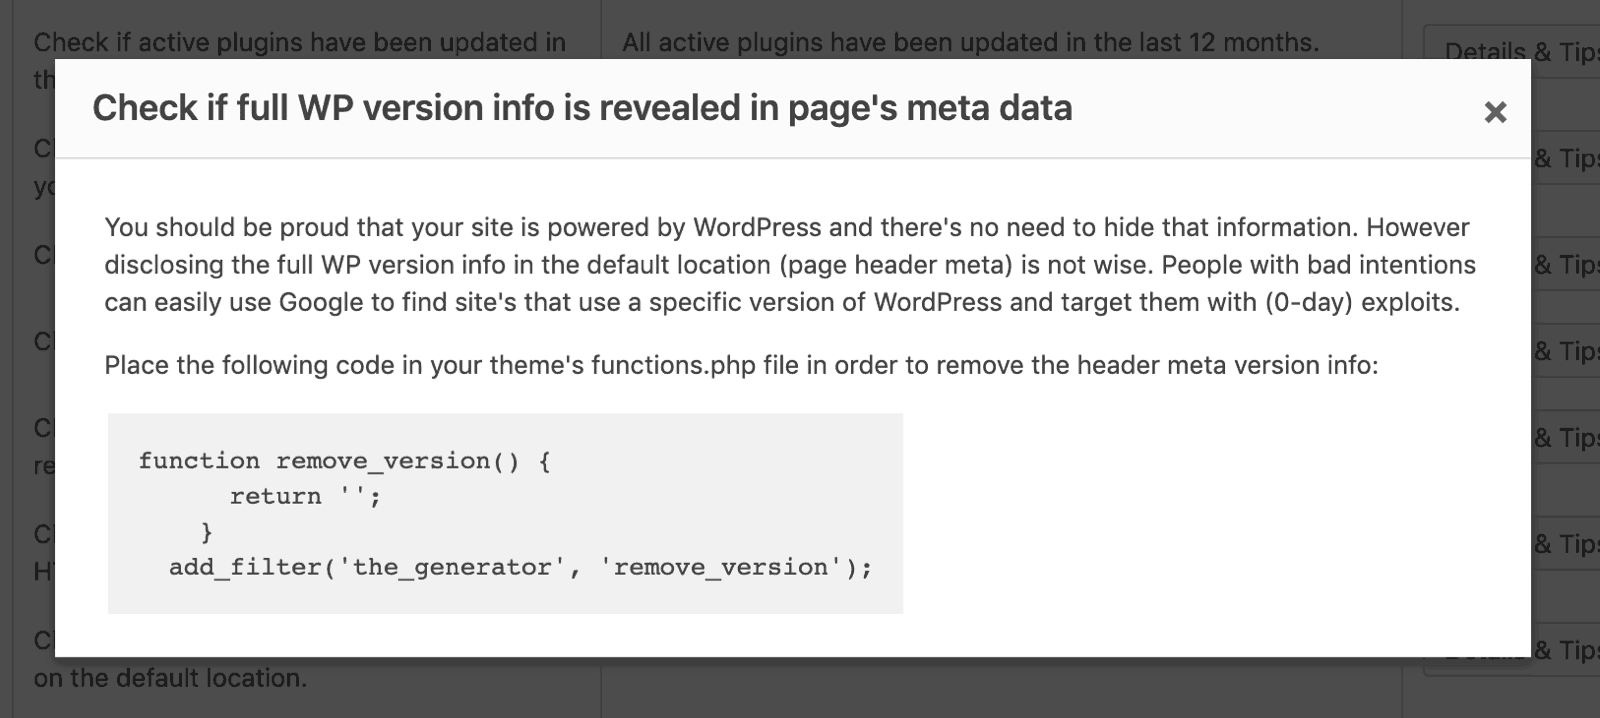 Check if full WordPress version info is revealed in page's meta data